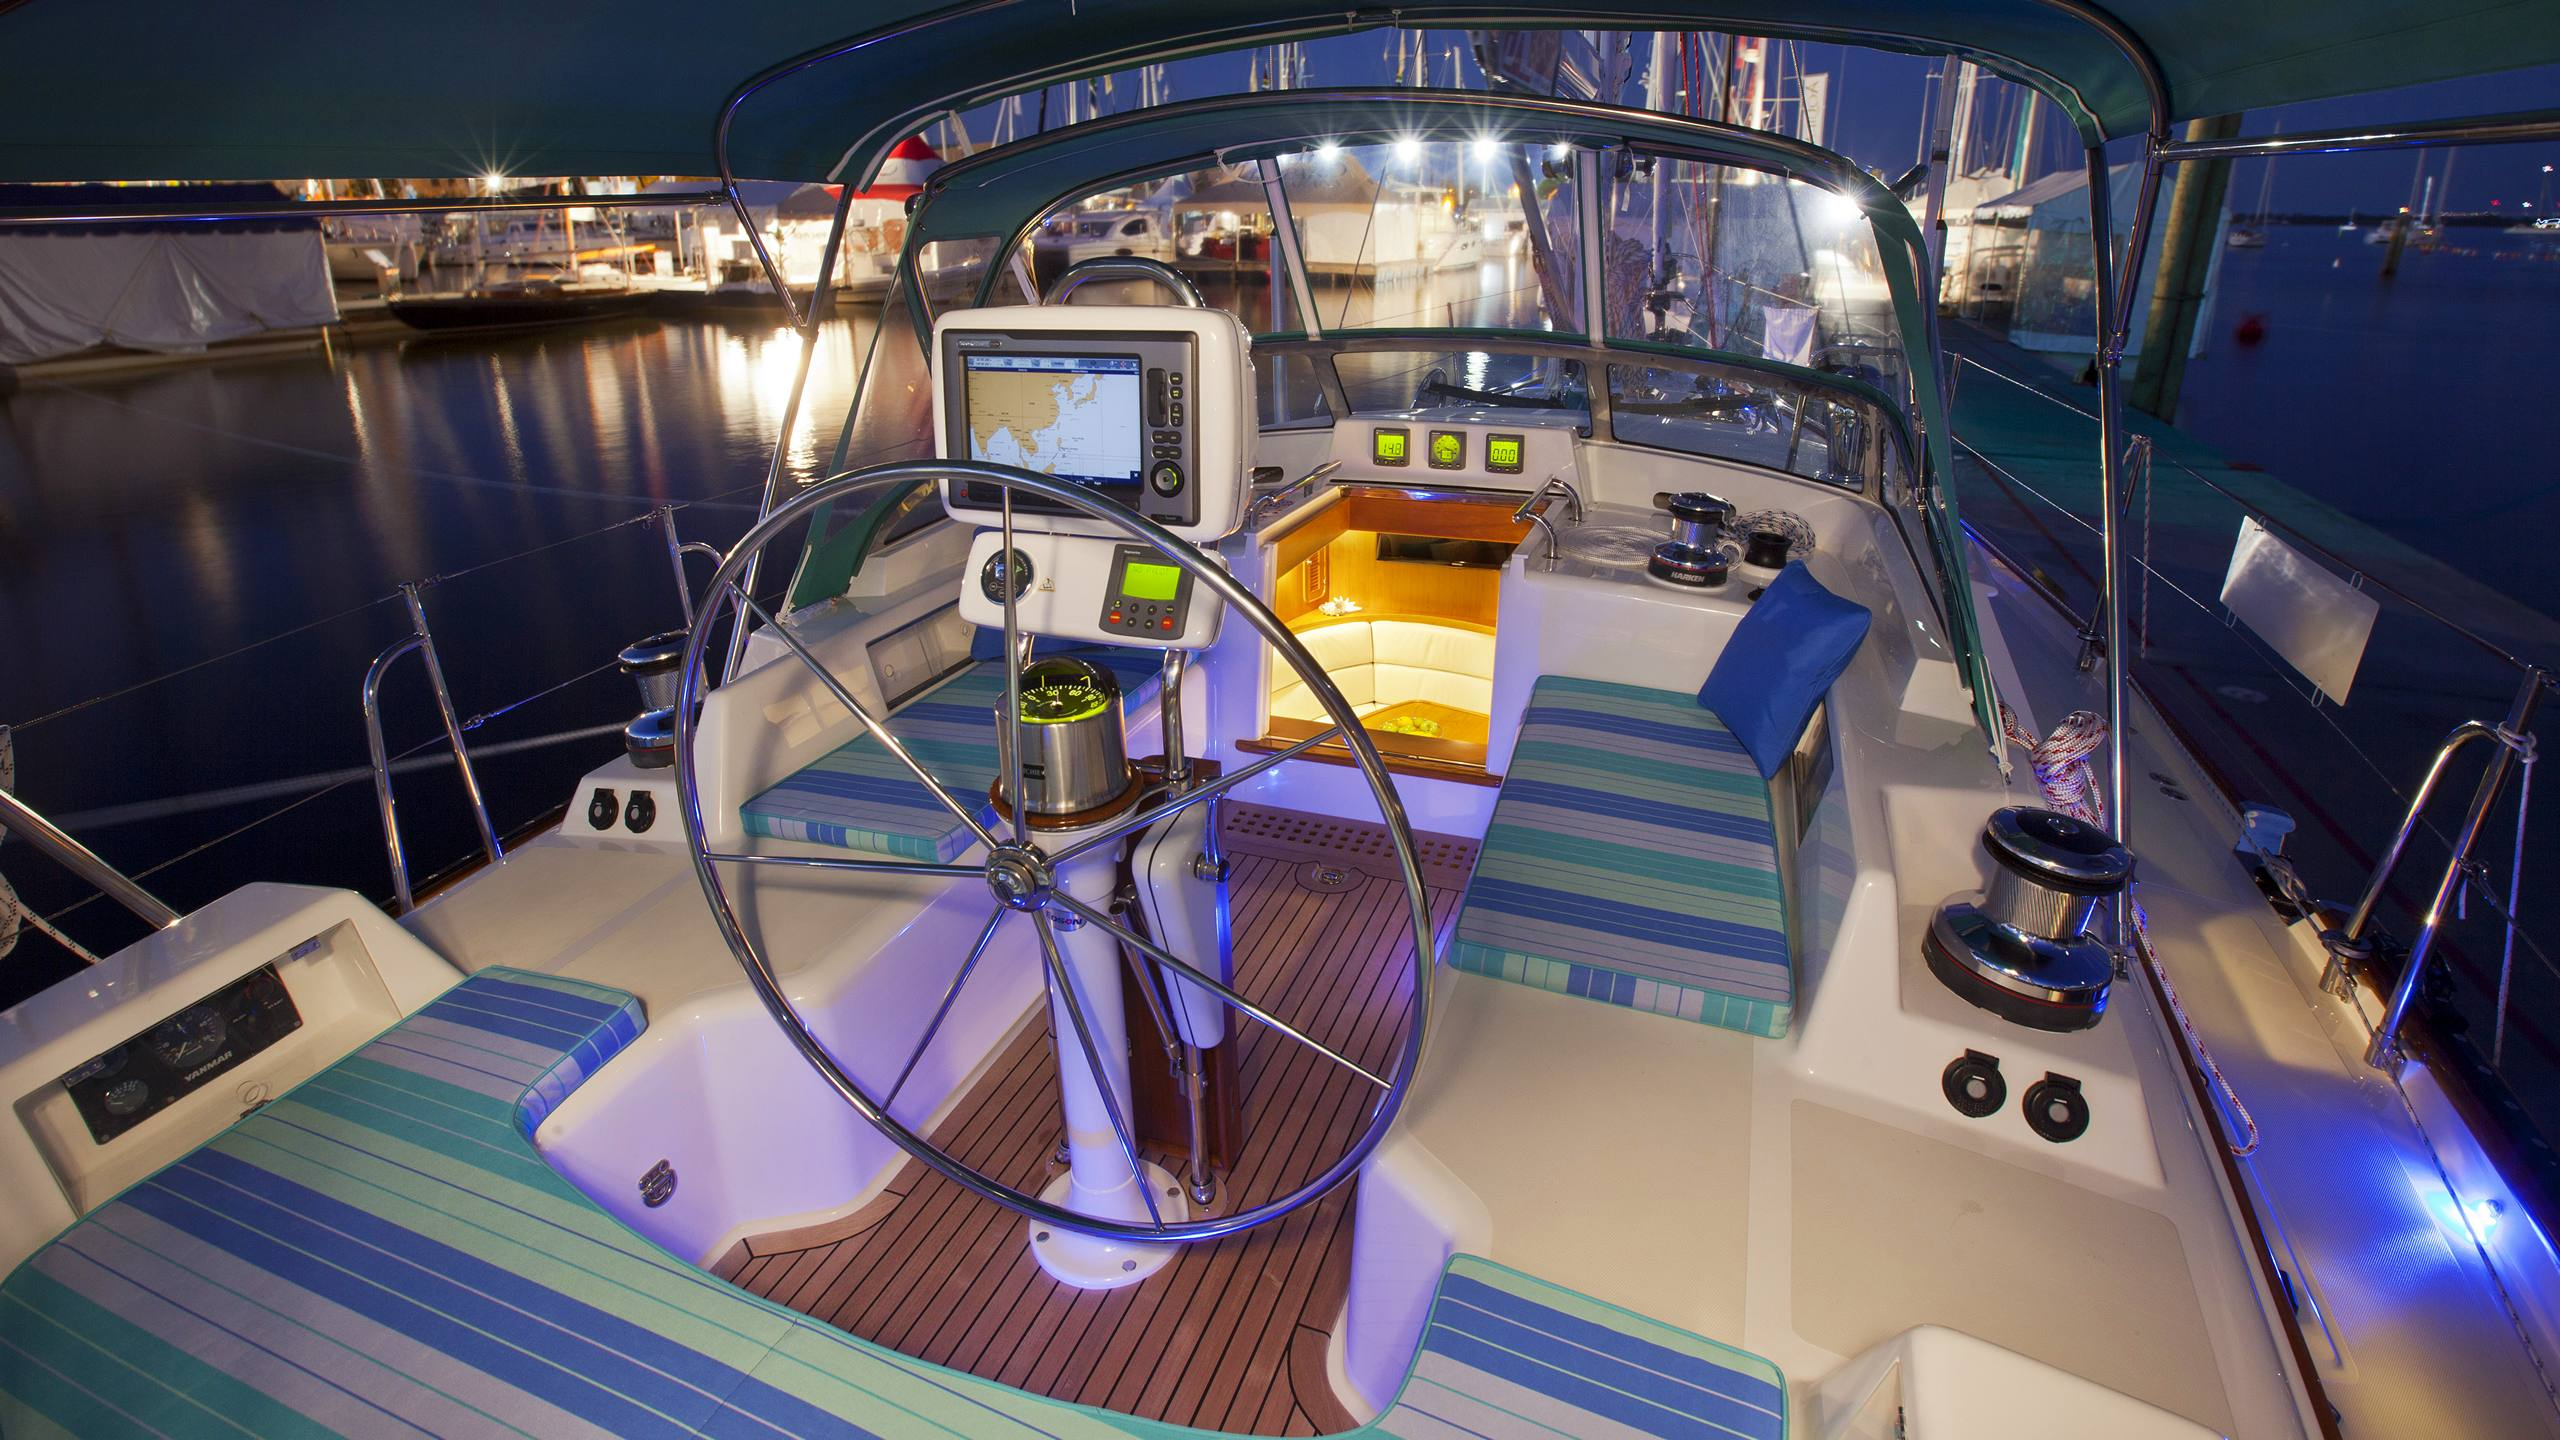 Passport Yachts are designed for comfort at rest and sea-kindliness underway.